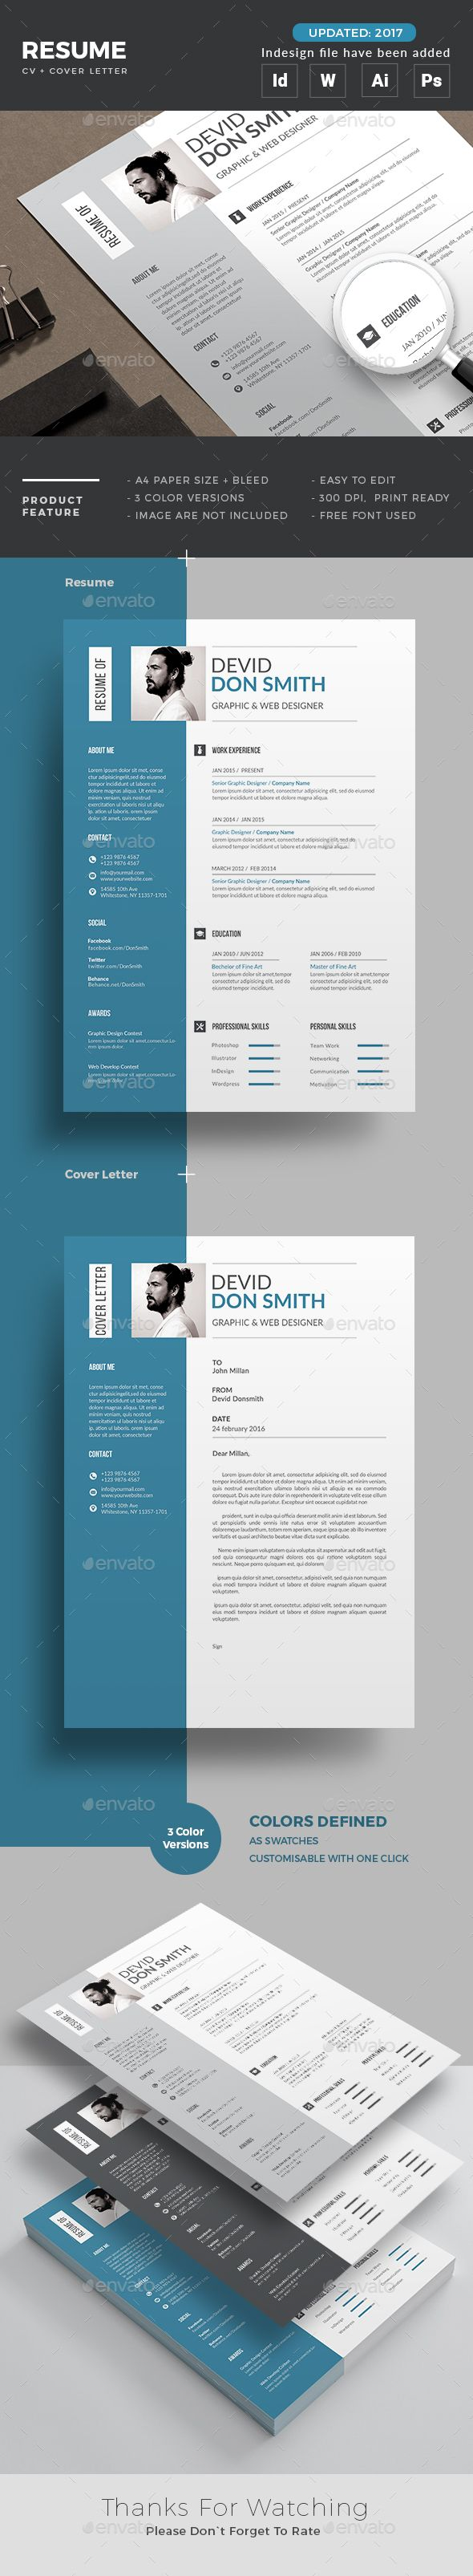 Resume Example Graphic Designer Example Good Resume Template Resume And  Resume Templates Expertisedesigner Cover Letter Graphic  Professional Graphic Design Resume